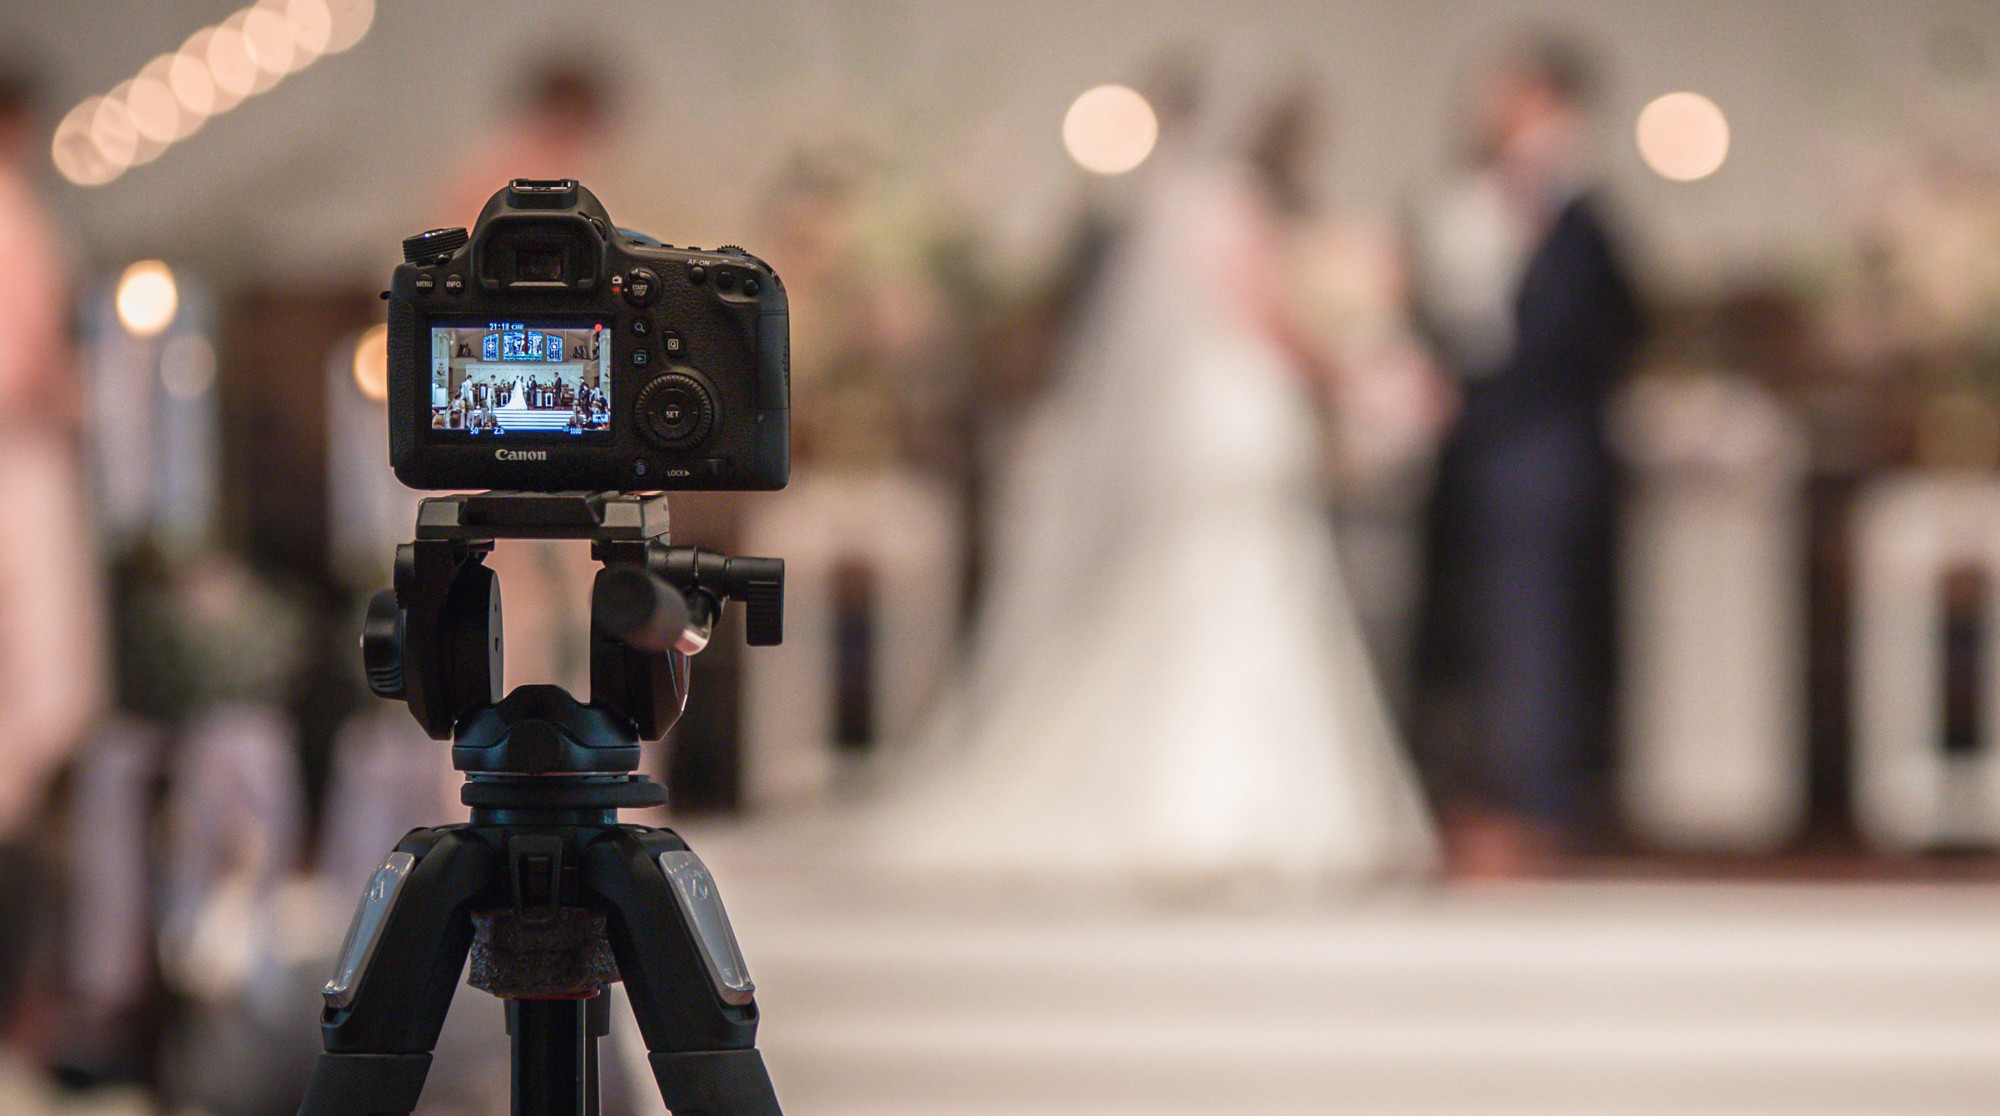 MAJOR EVENT VIDEOGRAPHY